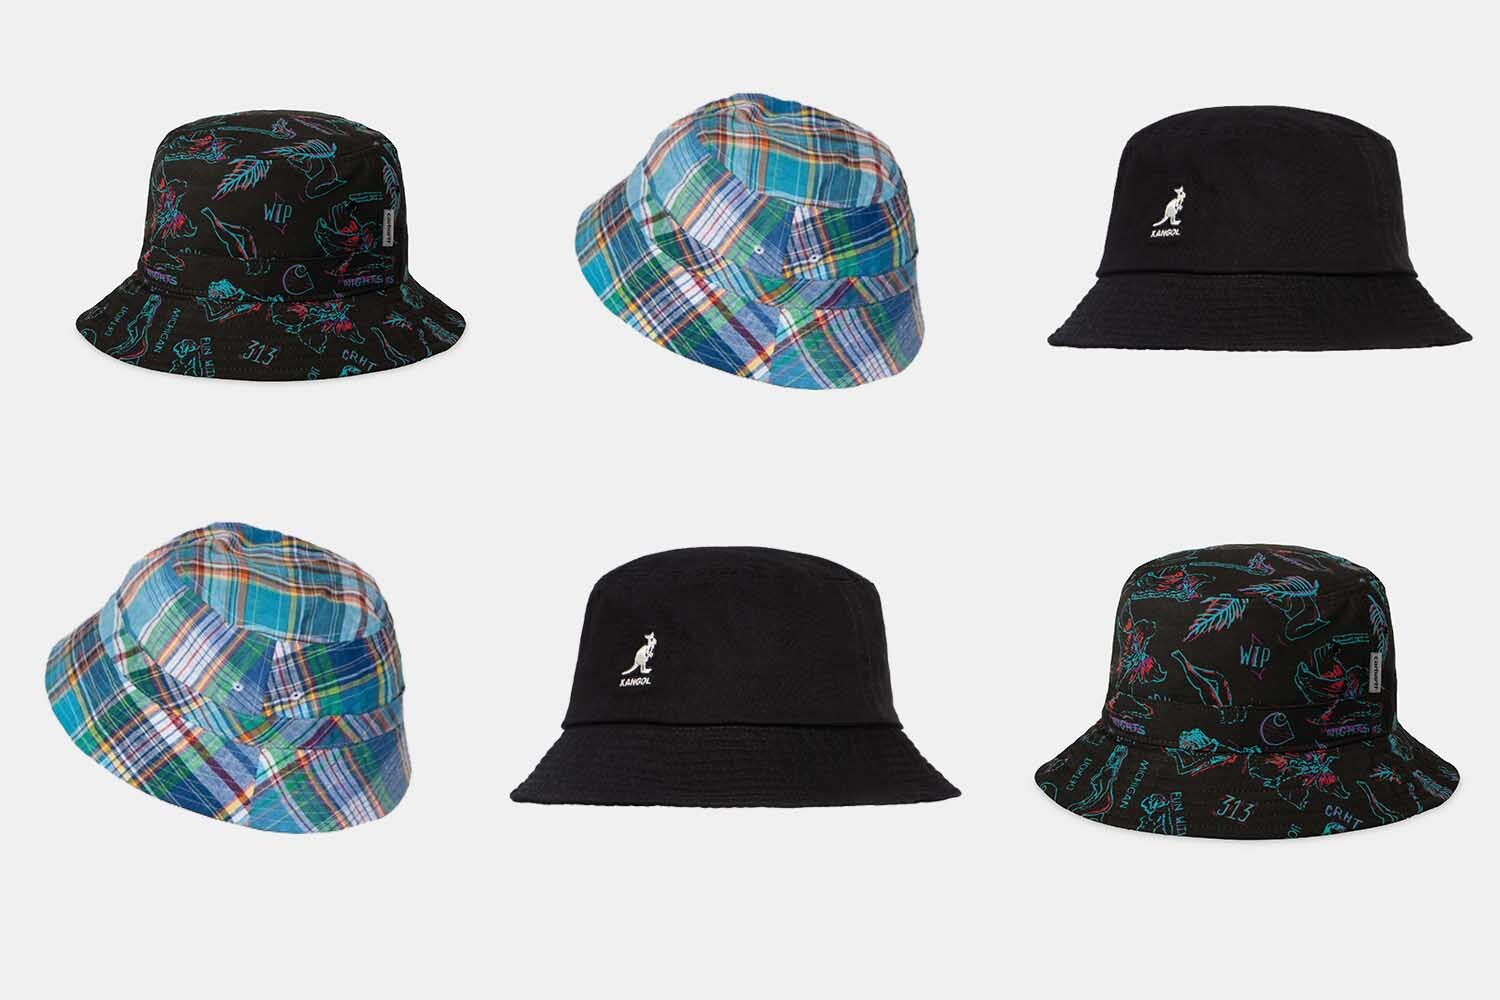 If you're ever going to try out bucket hats, there's no better time than now.